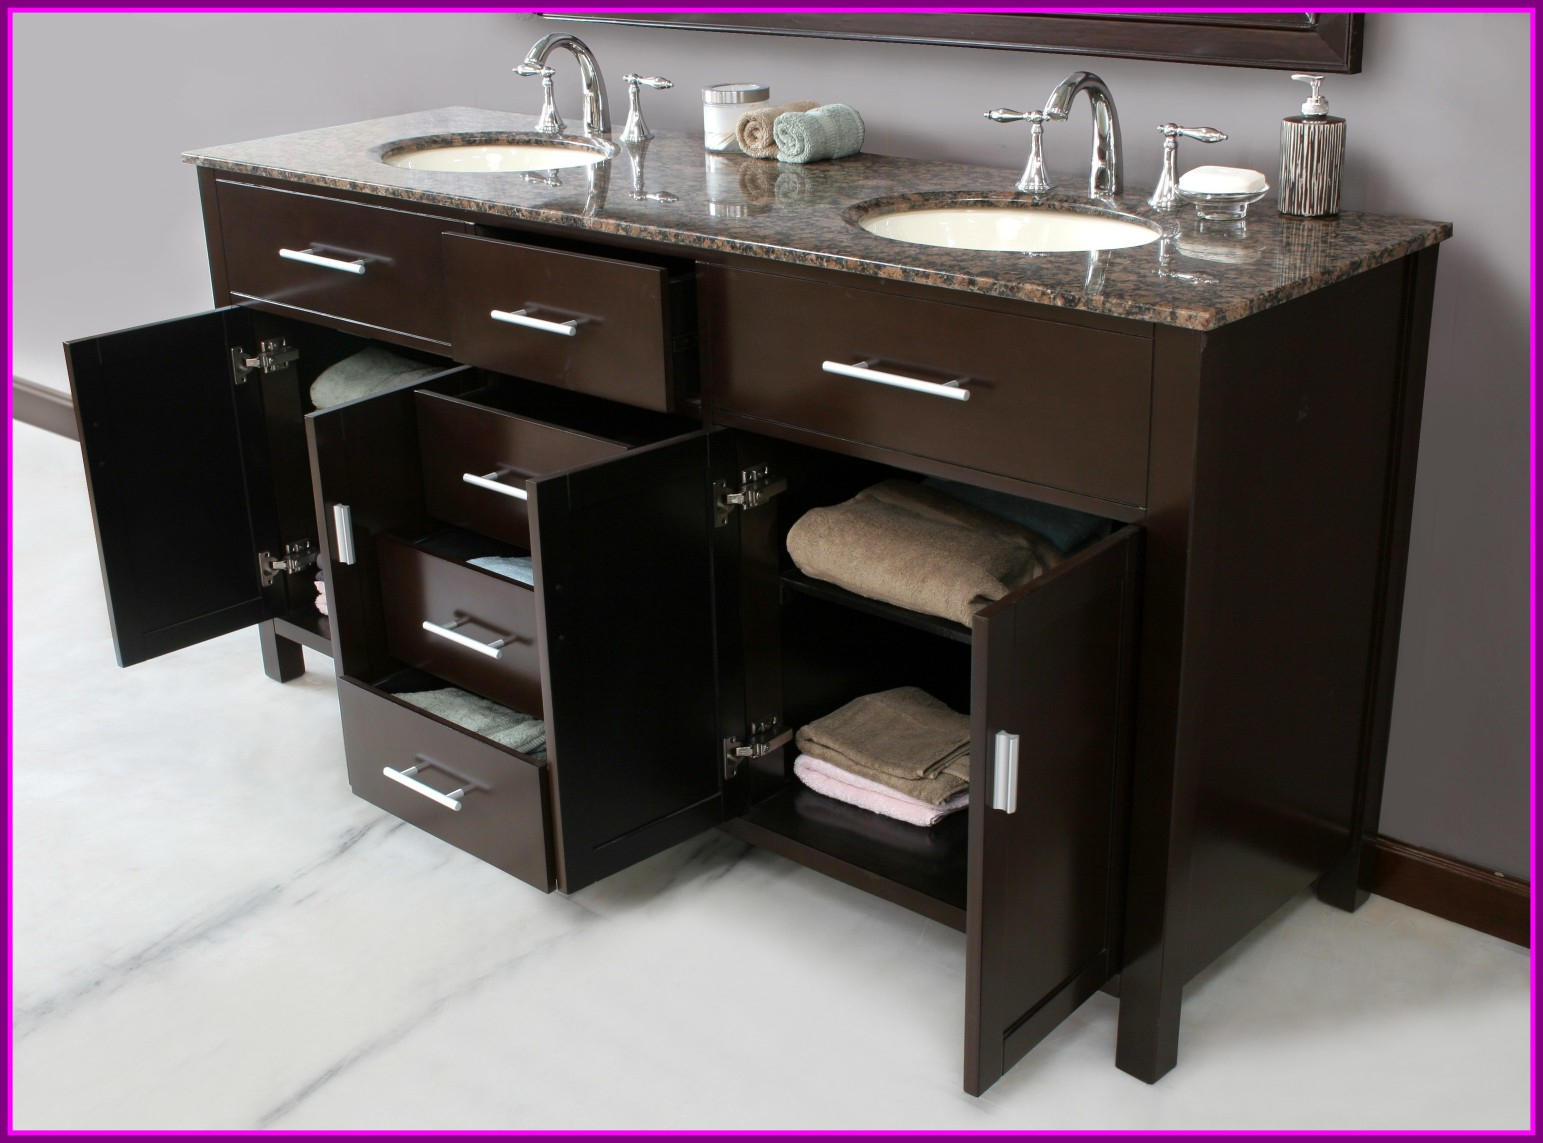 Inspirational Easily Bathroom Vanity 72 Double Sink Appealing Most Fine Vanities intended for Unique Bathroom Vanities Double Sink 72